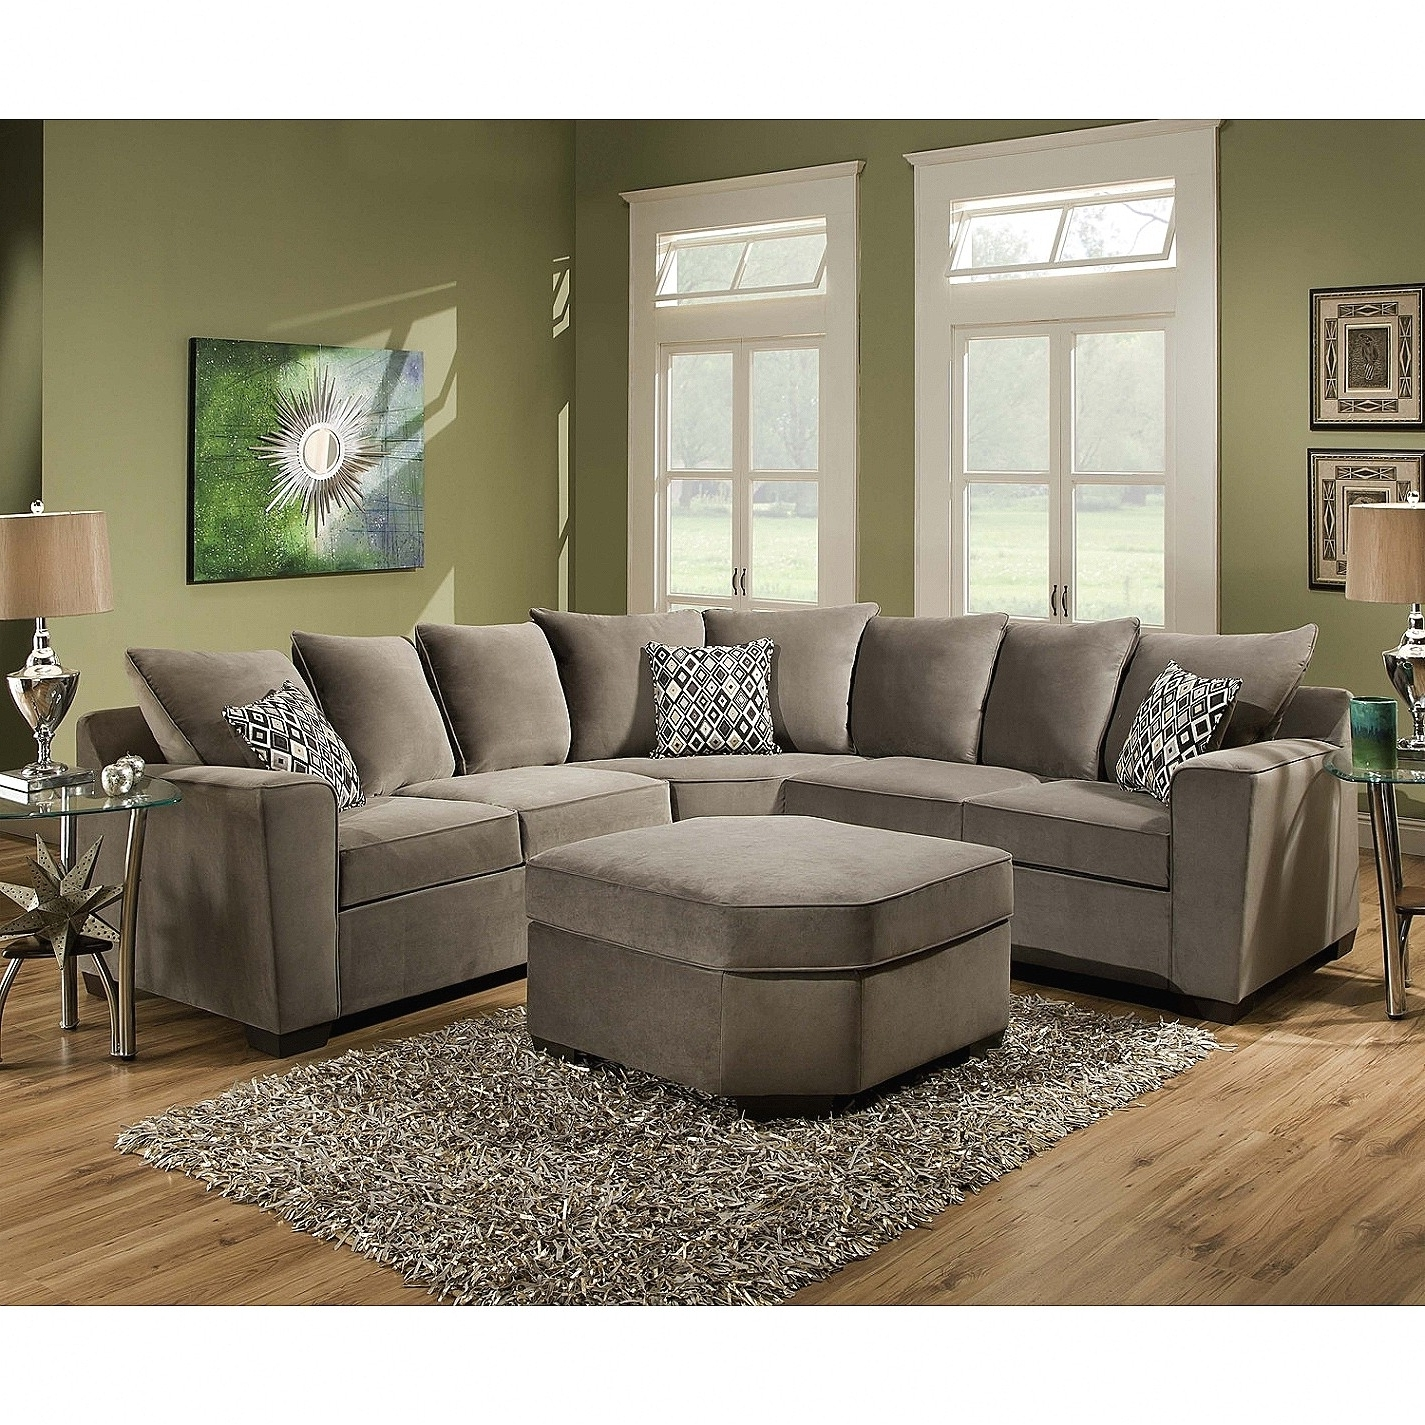 Current Plush Sectional Sofas Within Best Of Plush Sectional Sofas (34 Photos) (View 1 of 20)